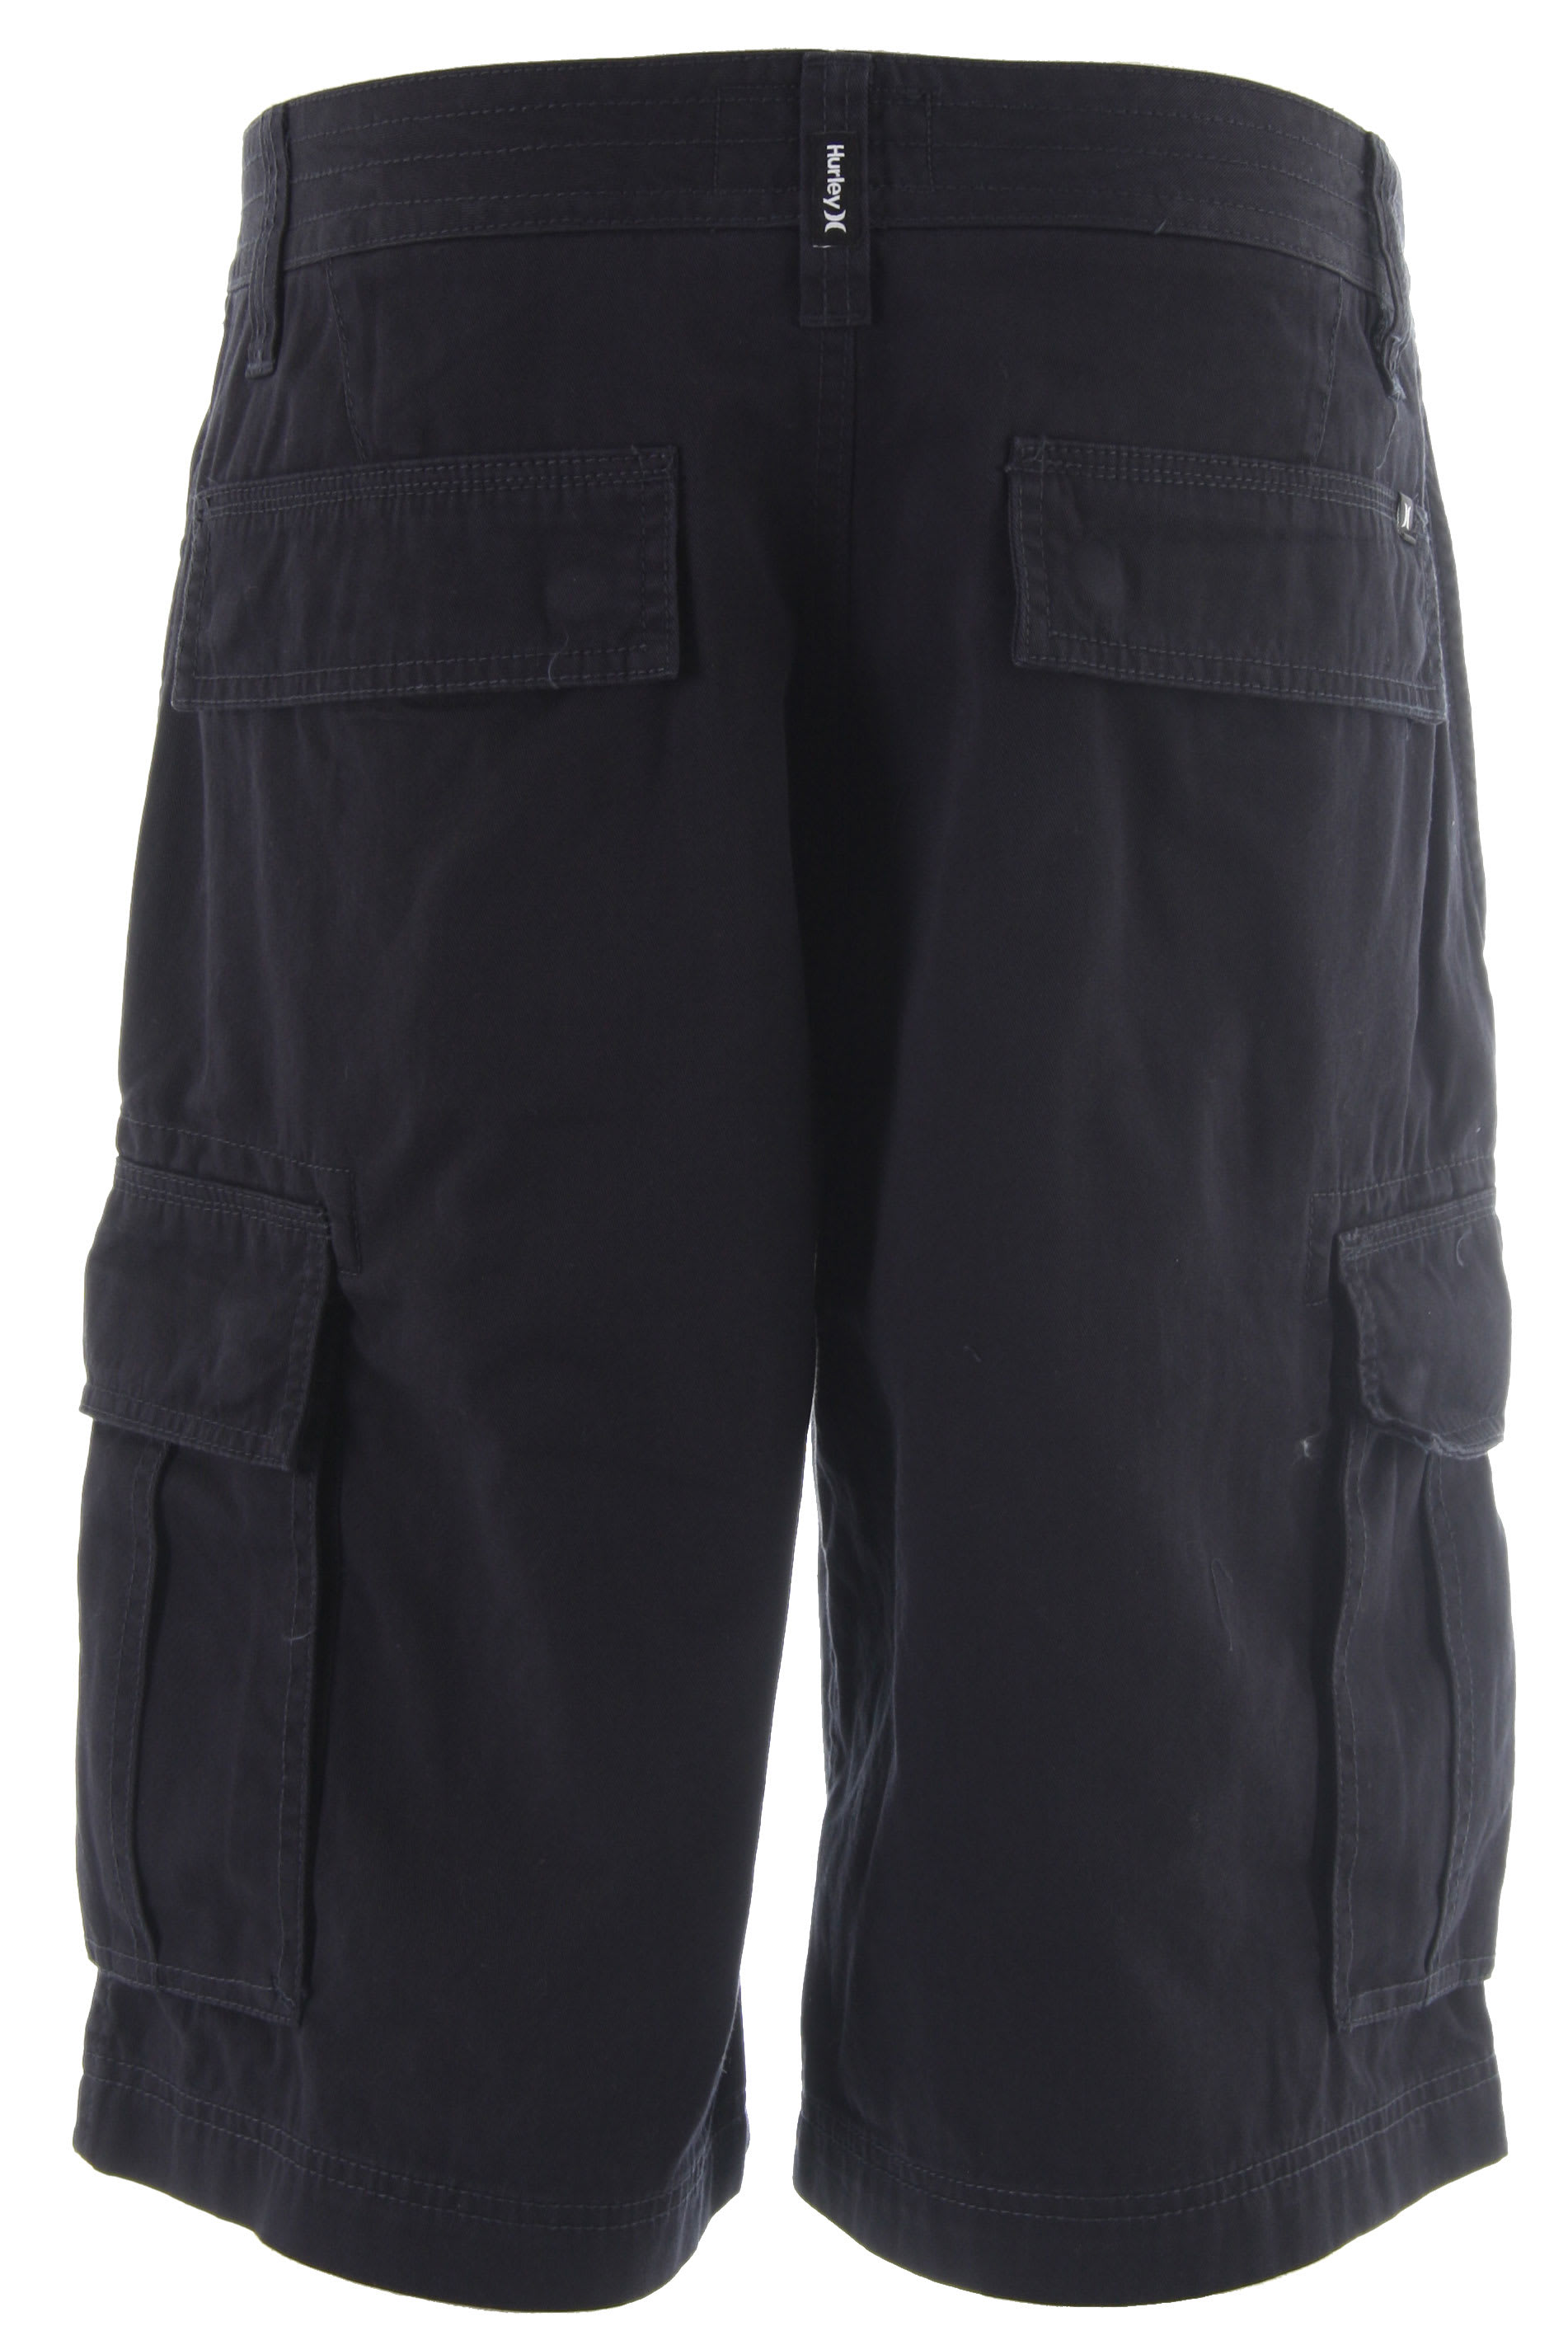 On Sale Hurley Commando 10 Shorts up to 70% off